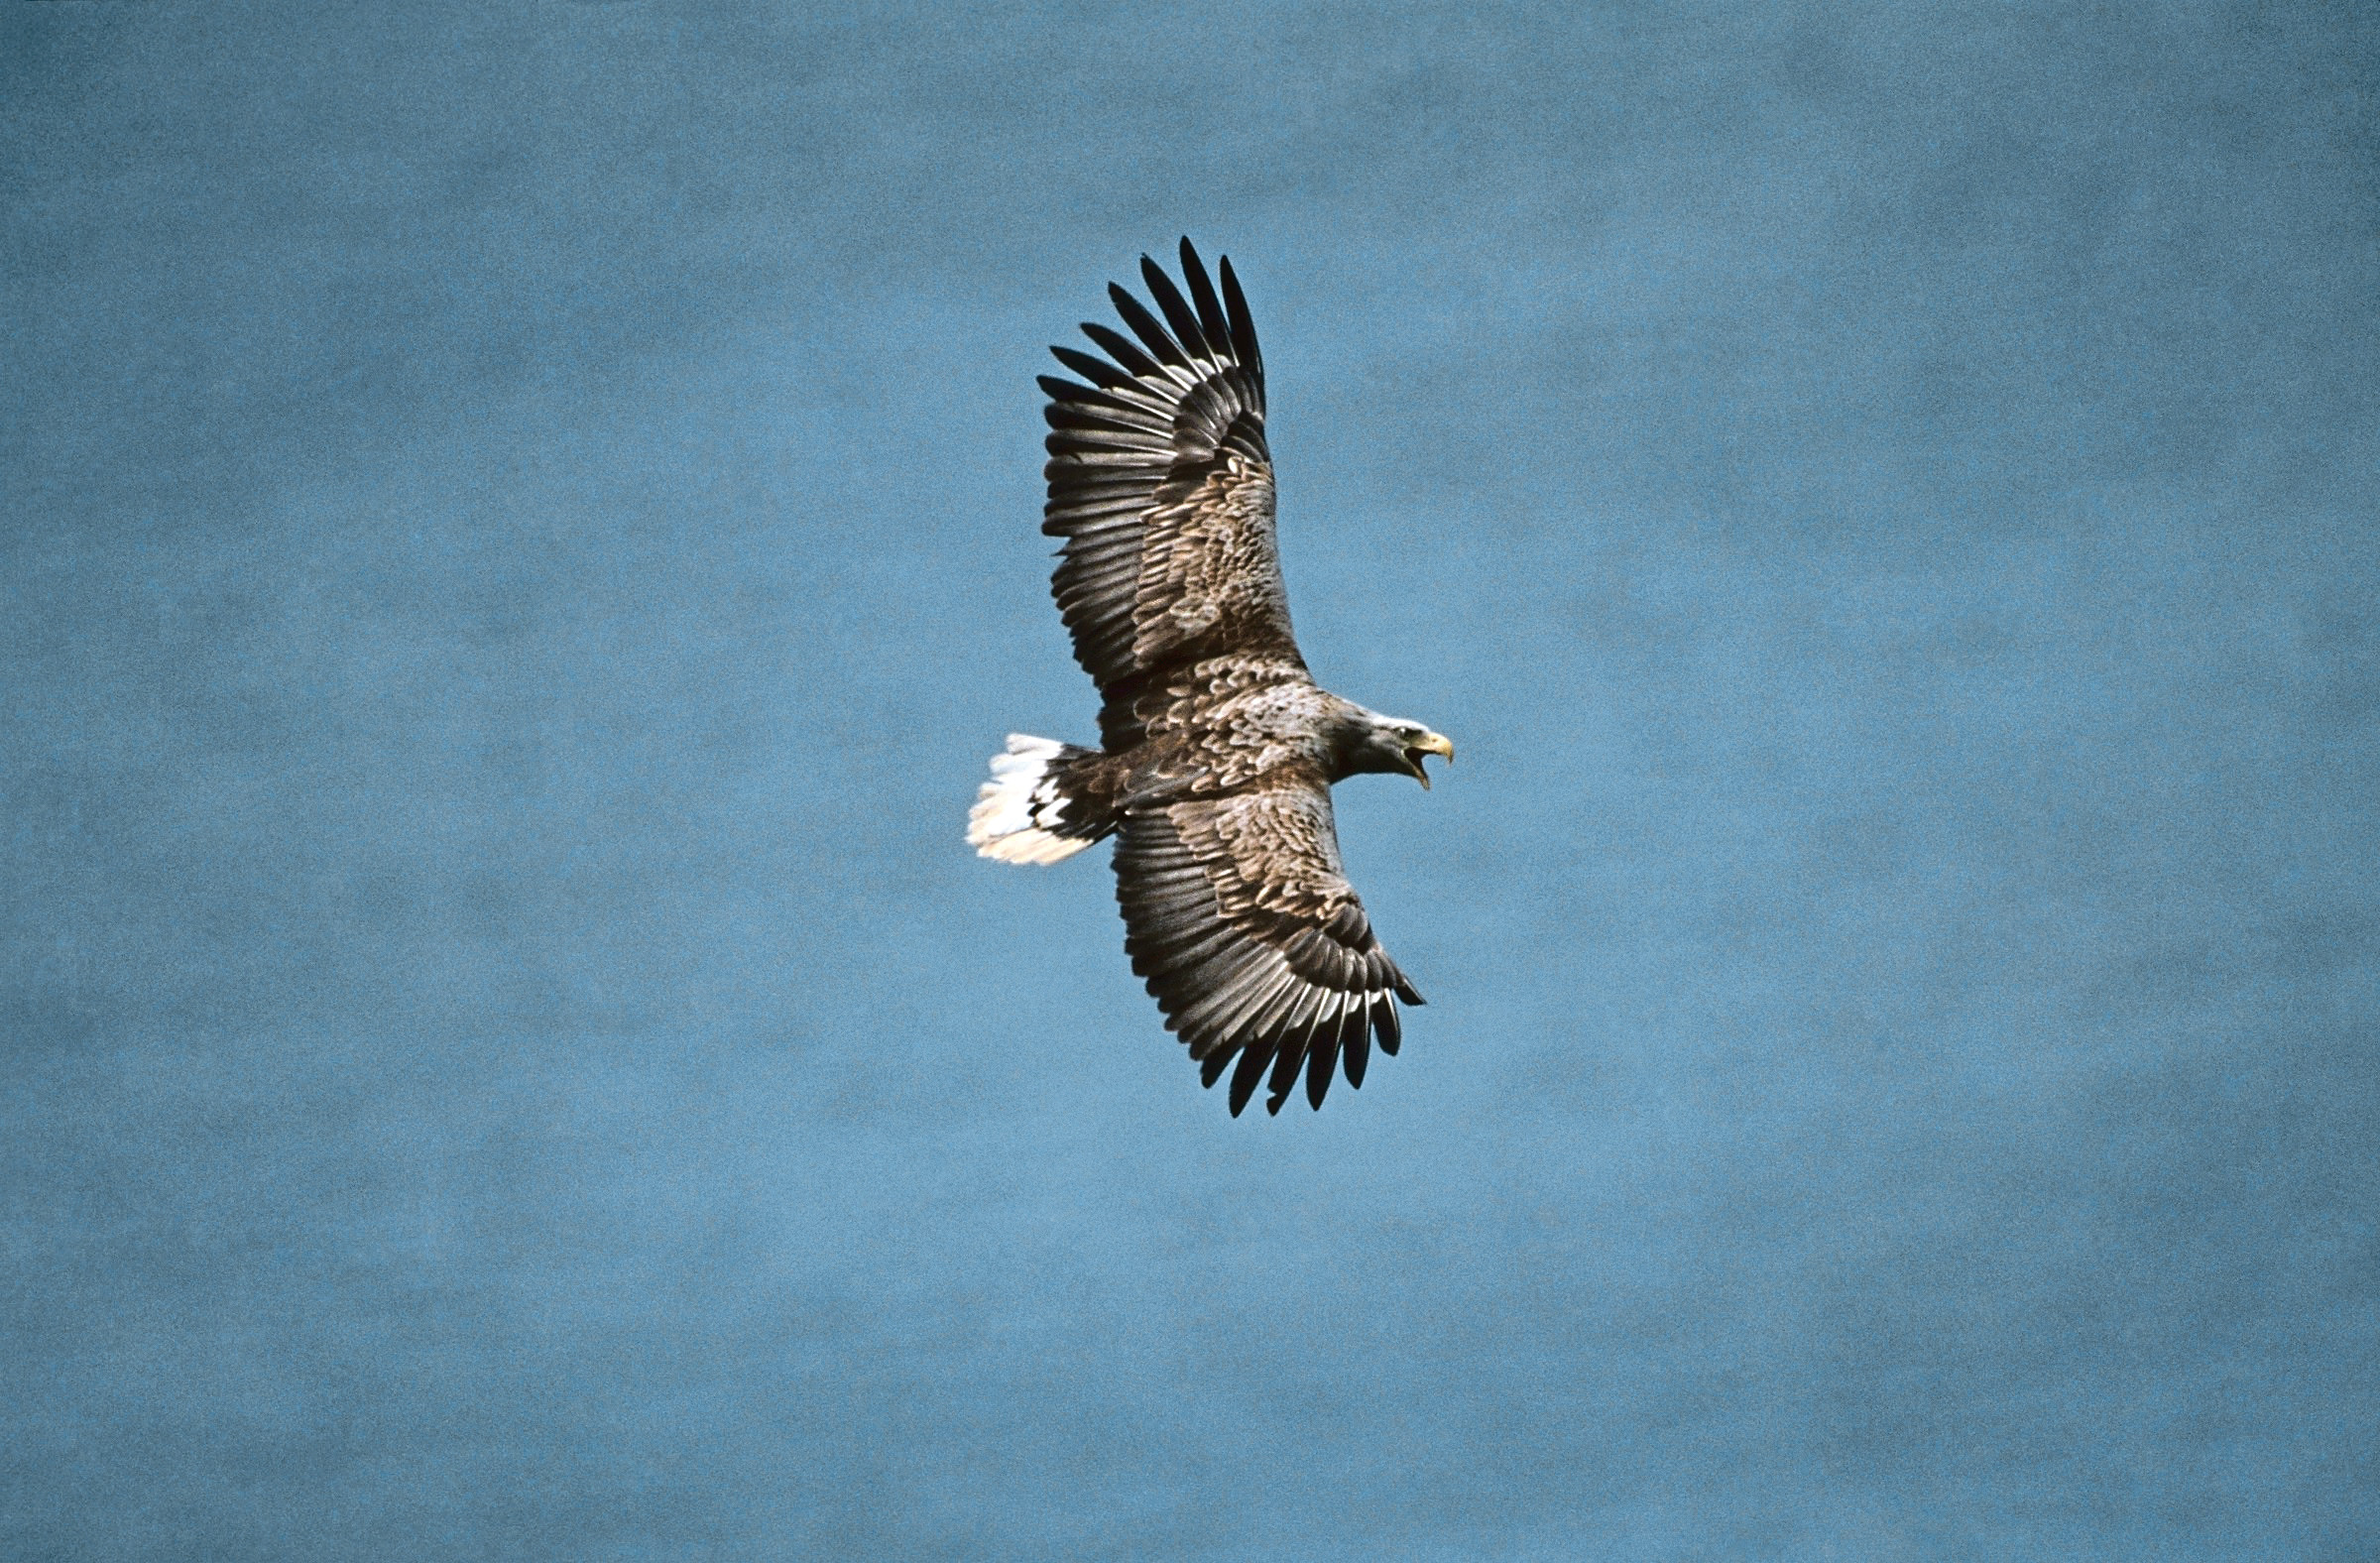 Adult white-tailed eagle in flight over the sea.